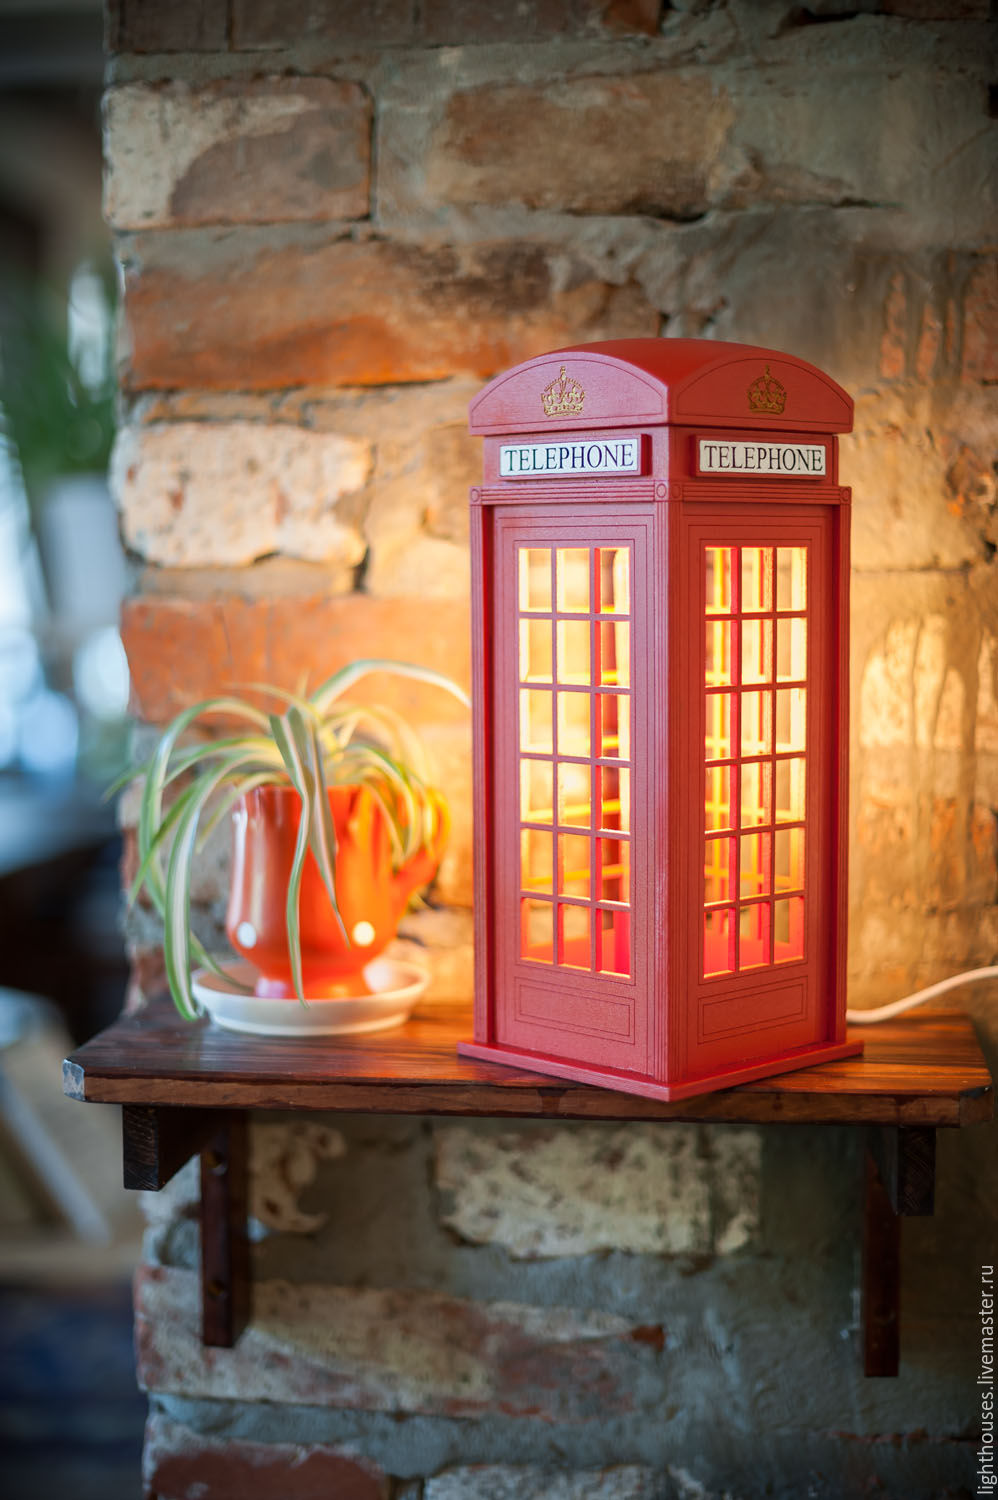 English Phone Booth Lamp Night Light For Home And